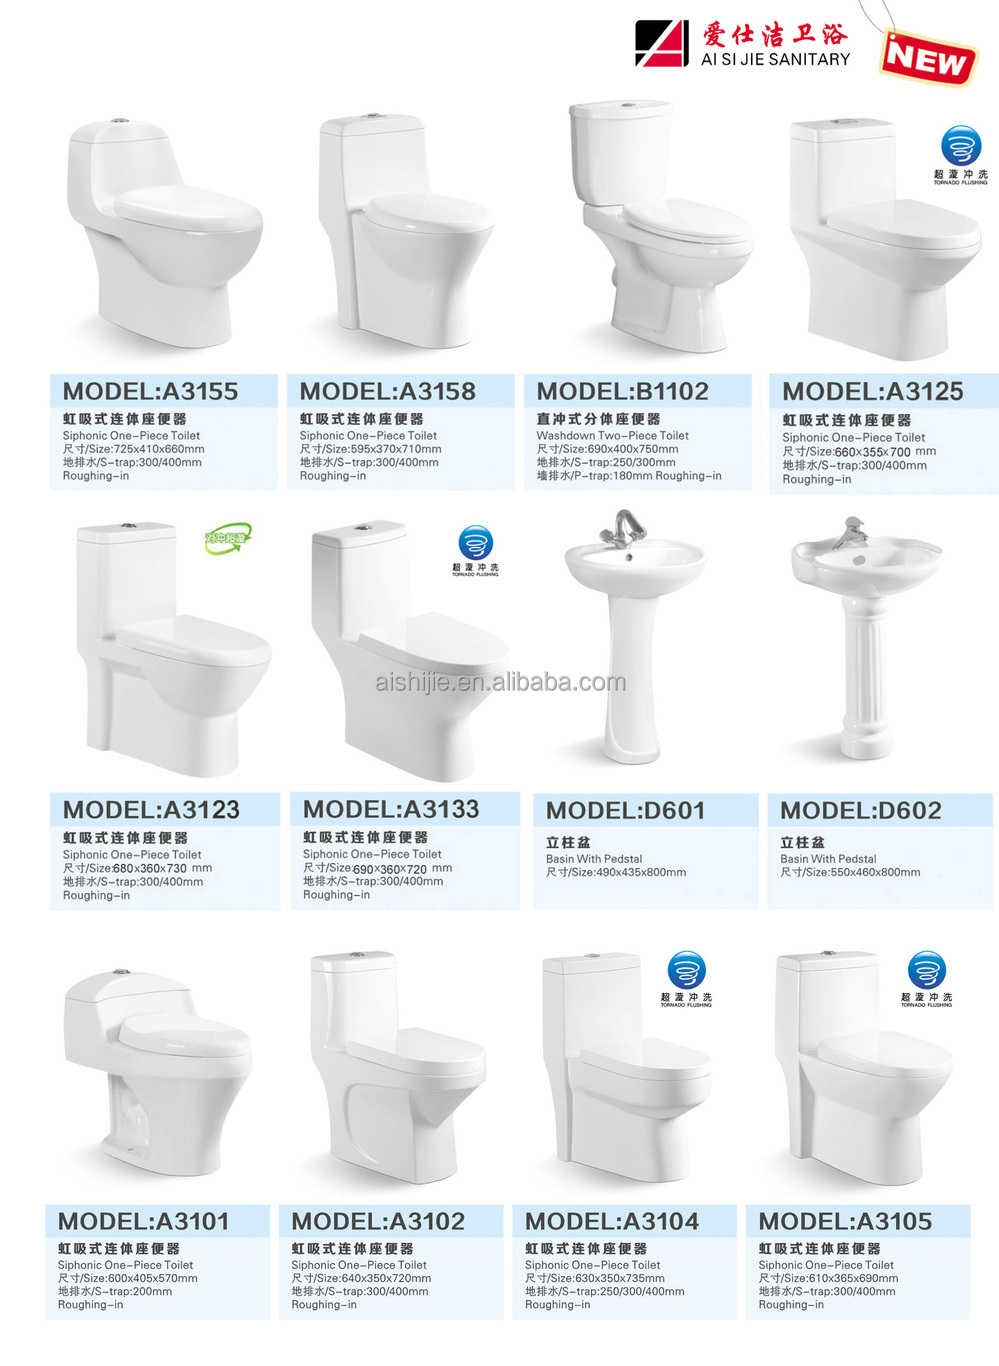 Bathroom and toilet accessories - A3119 Bathroom Products Sanitaryware Toilet Accessories Modern House Washdown Wc Ceramic Sanitary Fittings